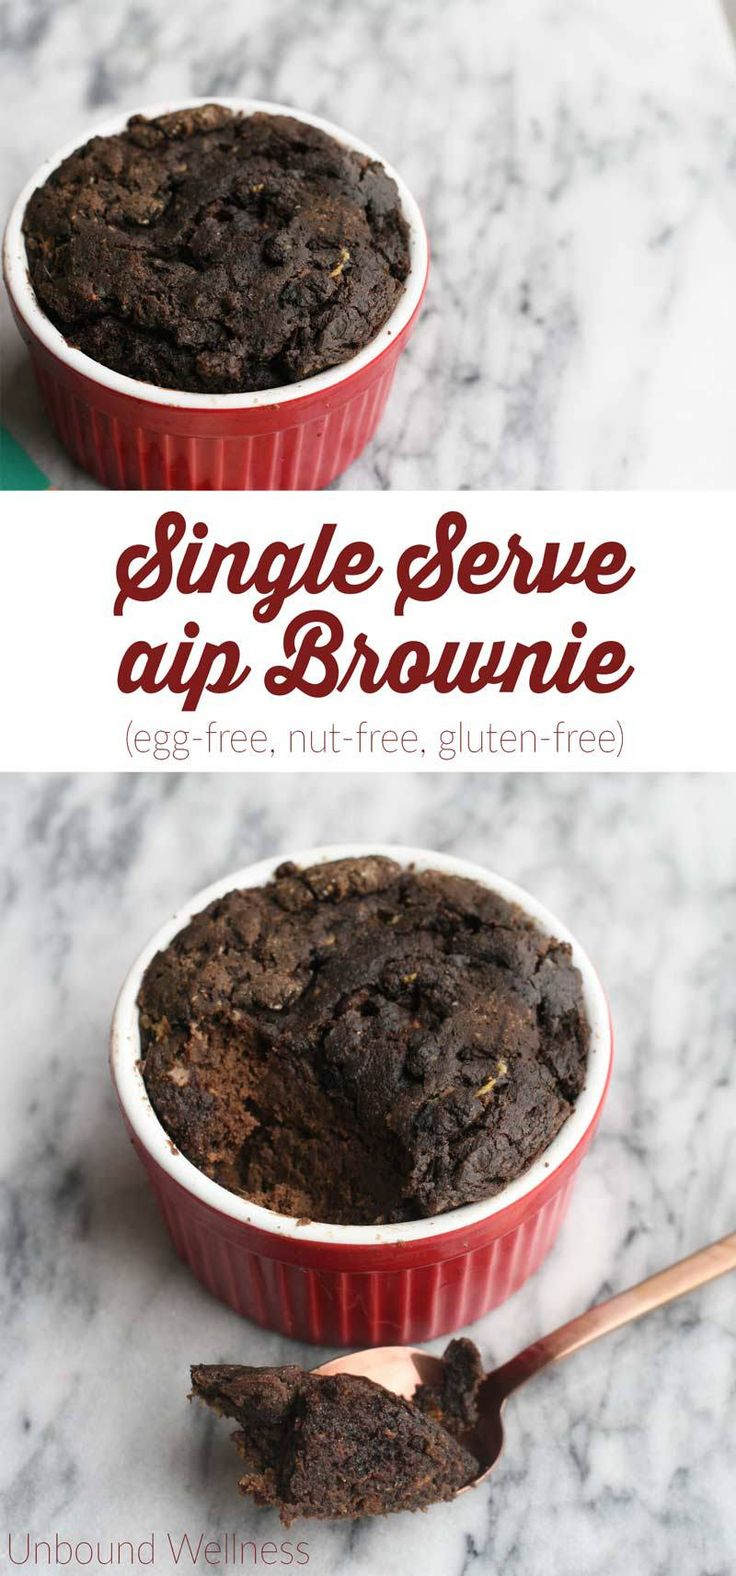 Single Serve AIP Brownie (Egg-free, nut-free, gluten-free)